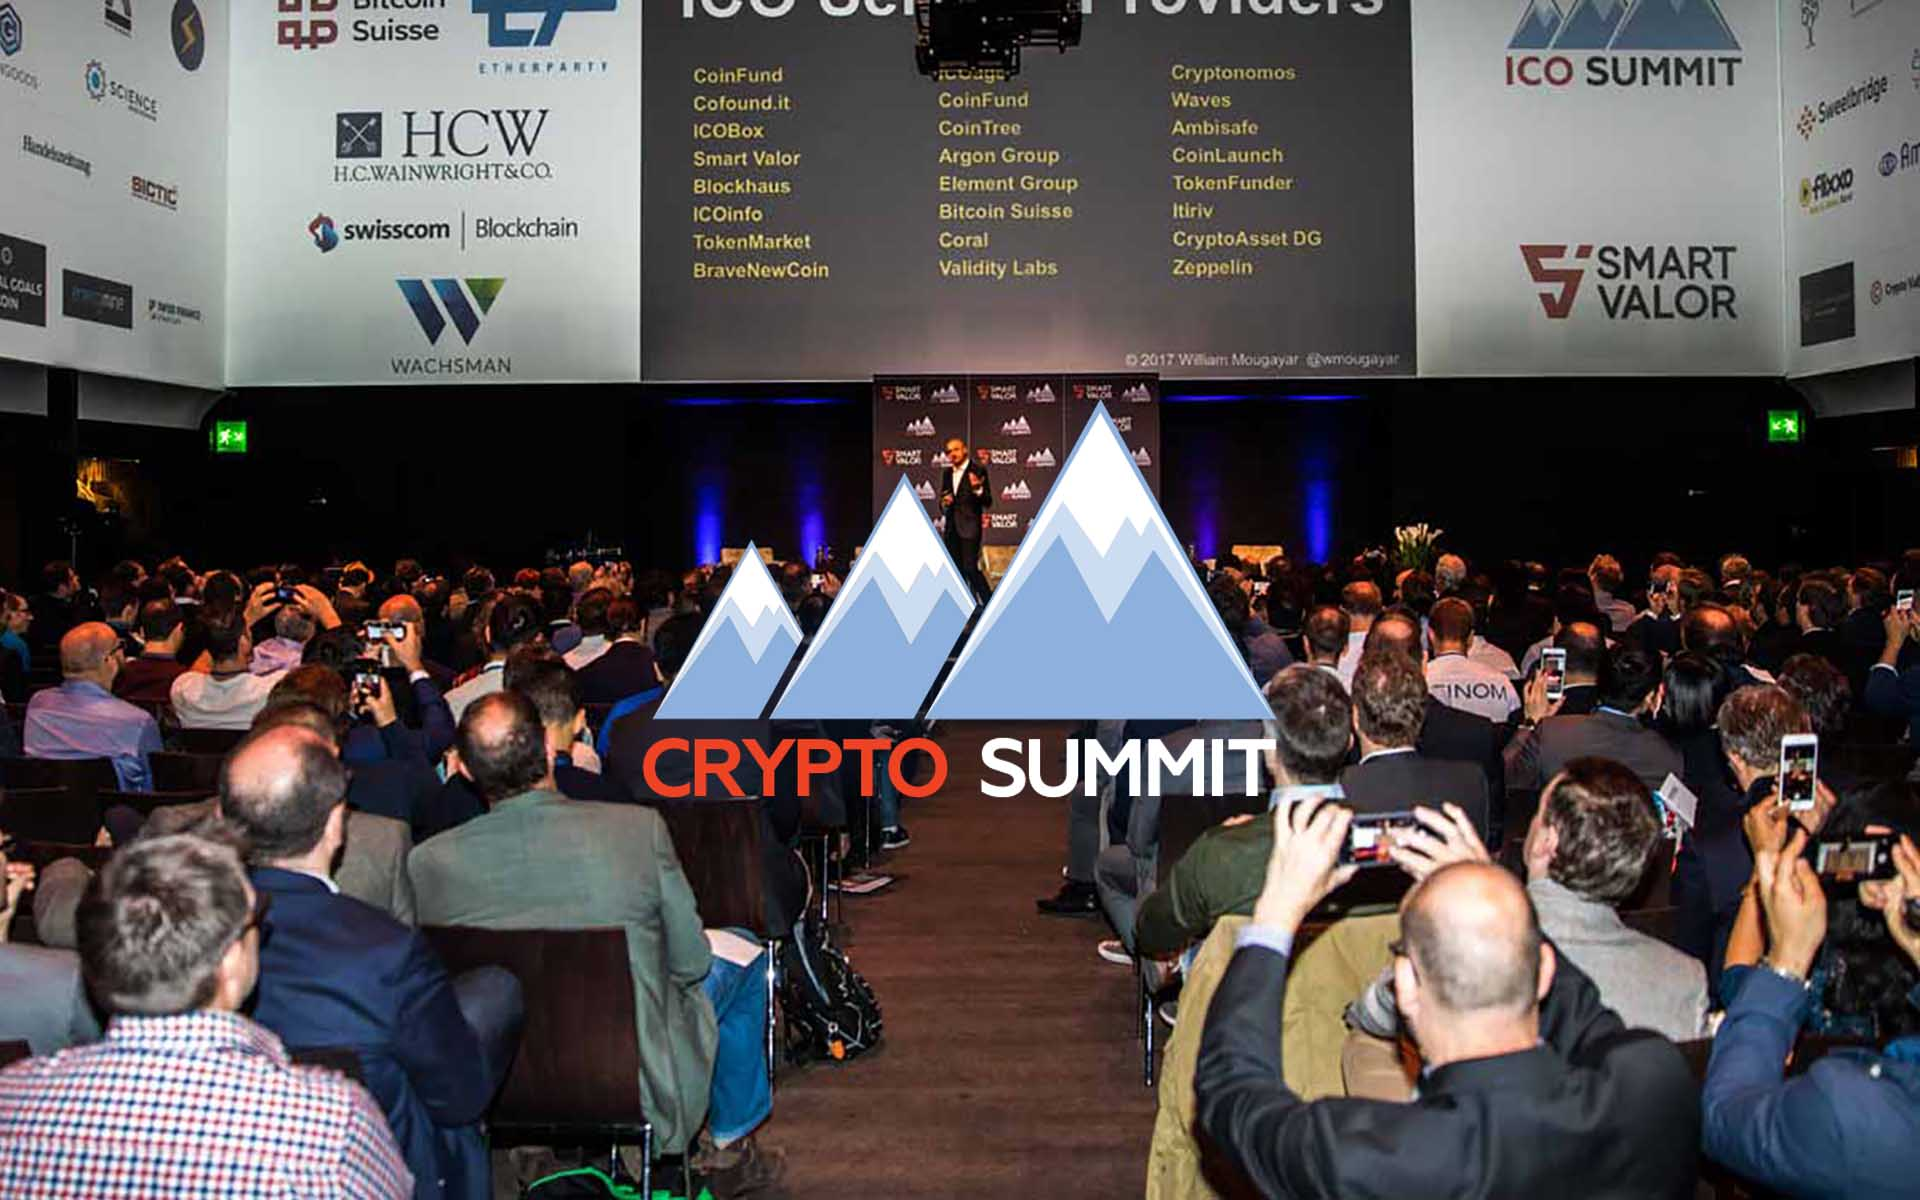 Blockchain Startup SMART VALOR Announces 2nd Annual Crypto Summit